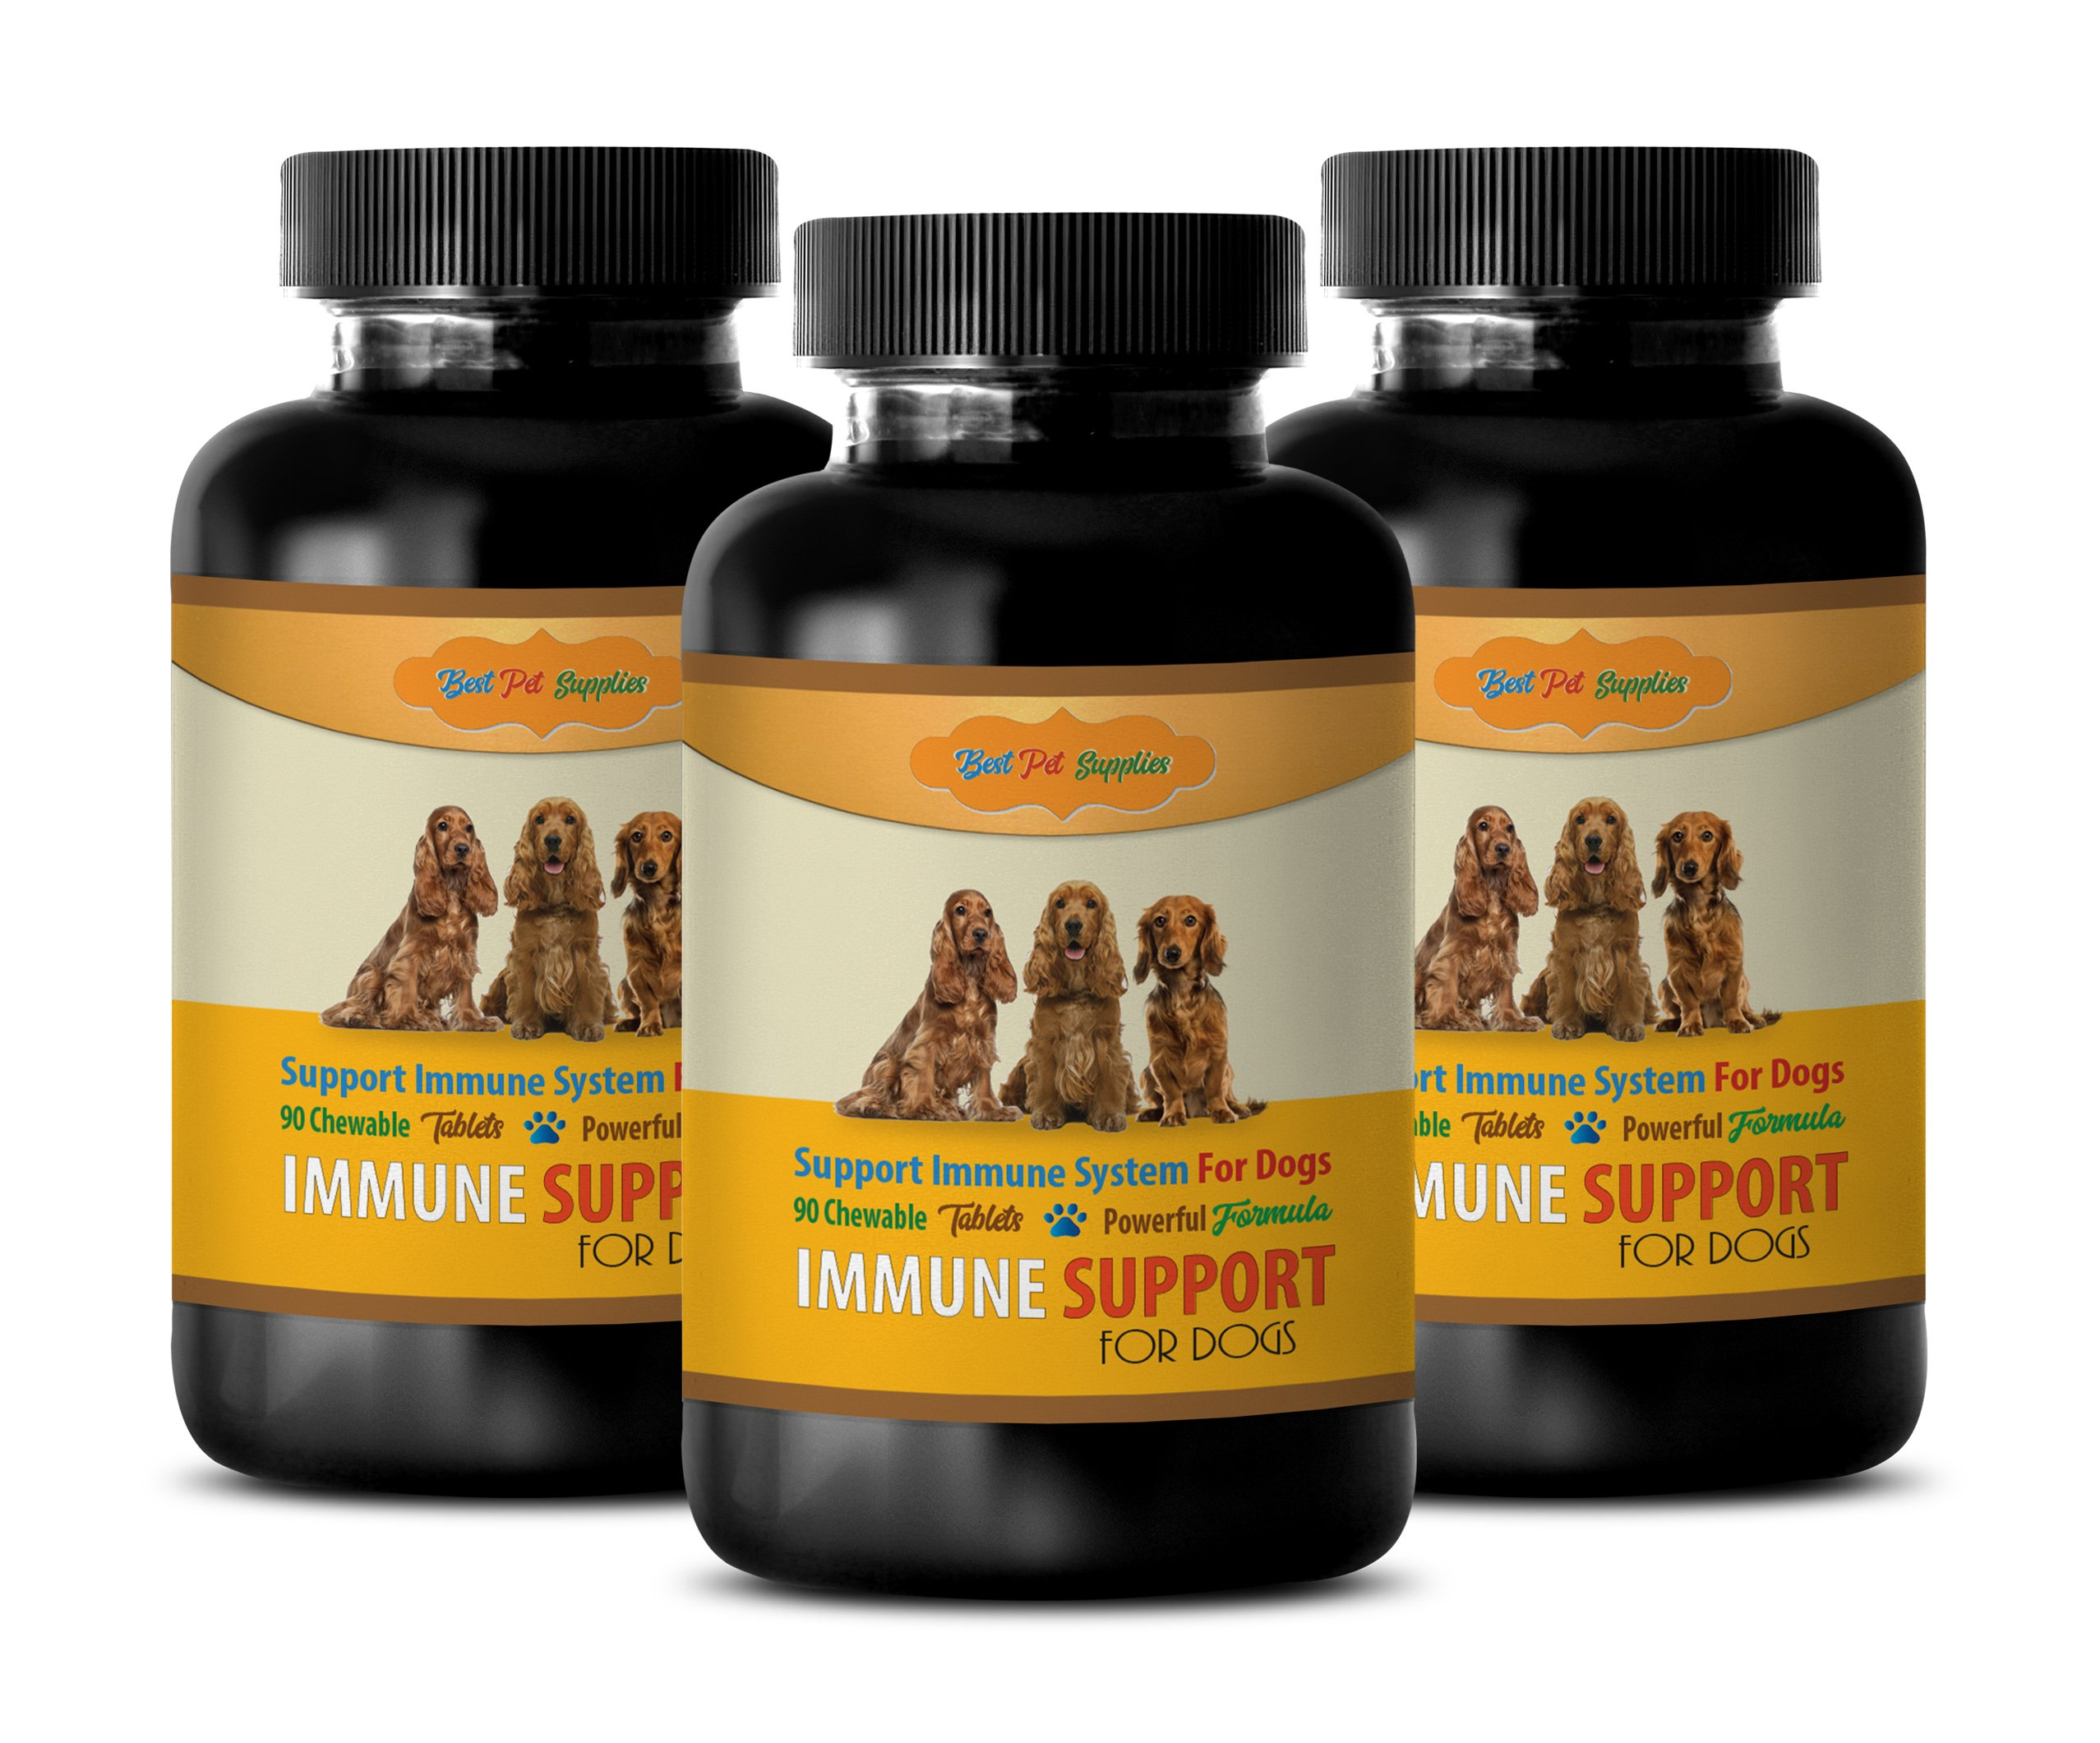 dog liver support - POWERFUL IMMUNE SUPPORT FOR DOGS - BEST IMMUNE FORMULA - CHEWY TREATS - dog immune booster - 270 Chews (3 Bottle) by BEST PET SUPPLIES LLC